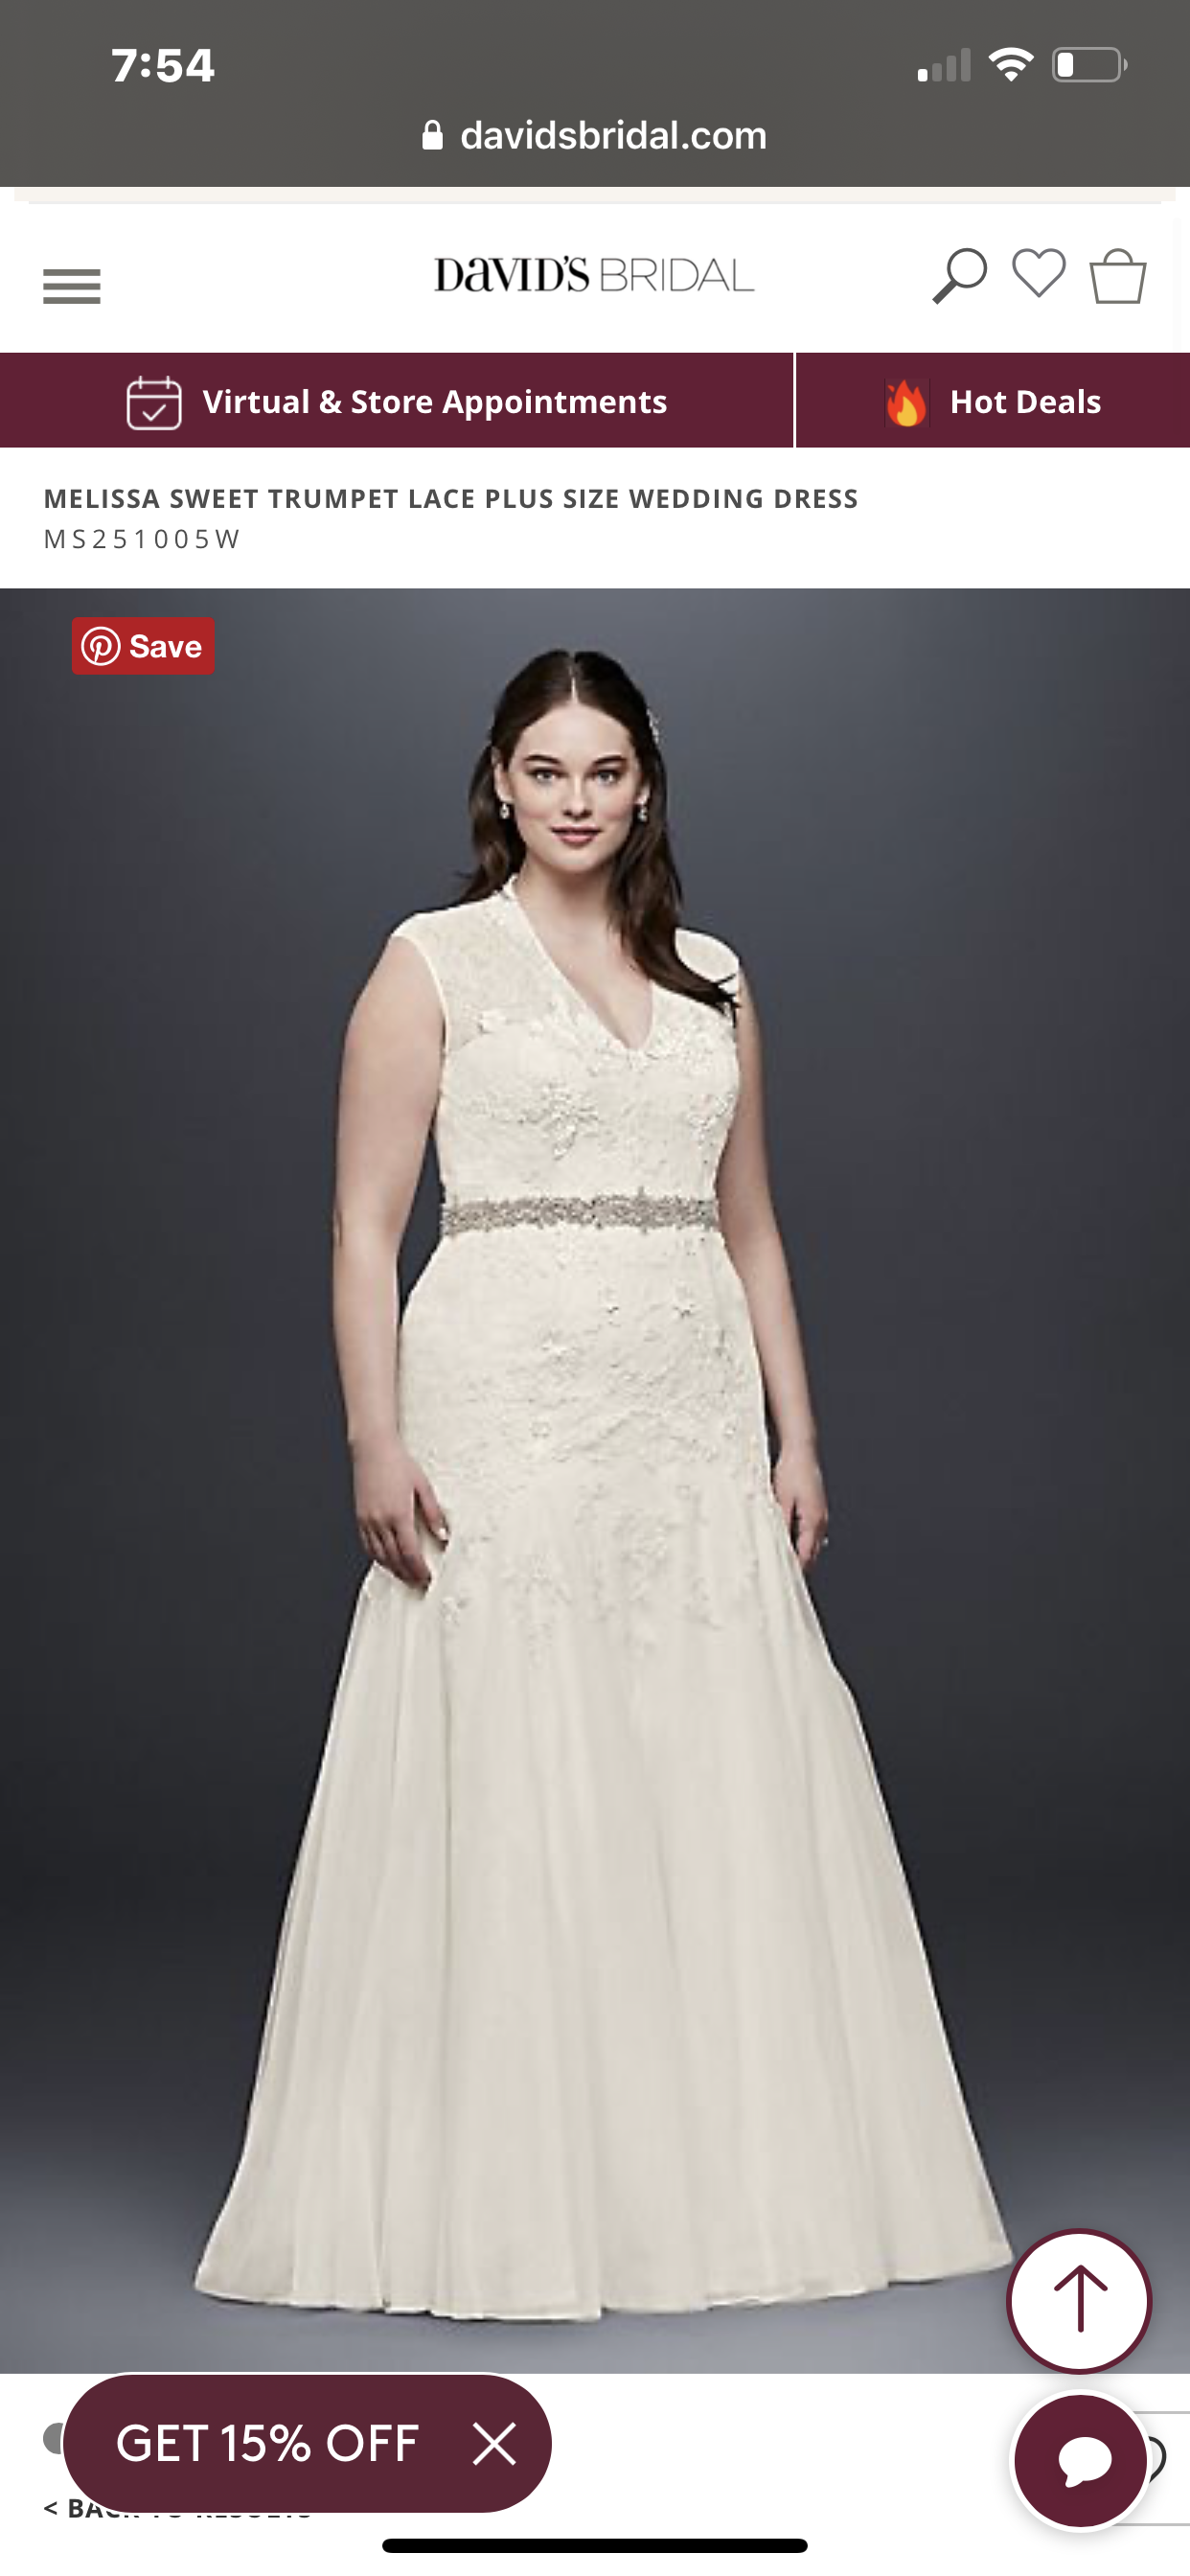 Pin By Caitlin Melster On Wedding Dresses Wedding Dresses Dresses Plus Size Wedding [ 2688 x 1242 Pixel ]